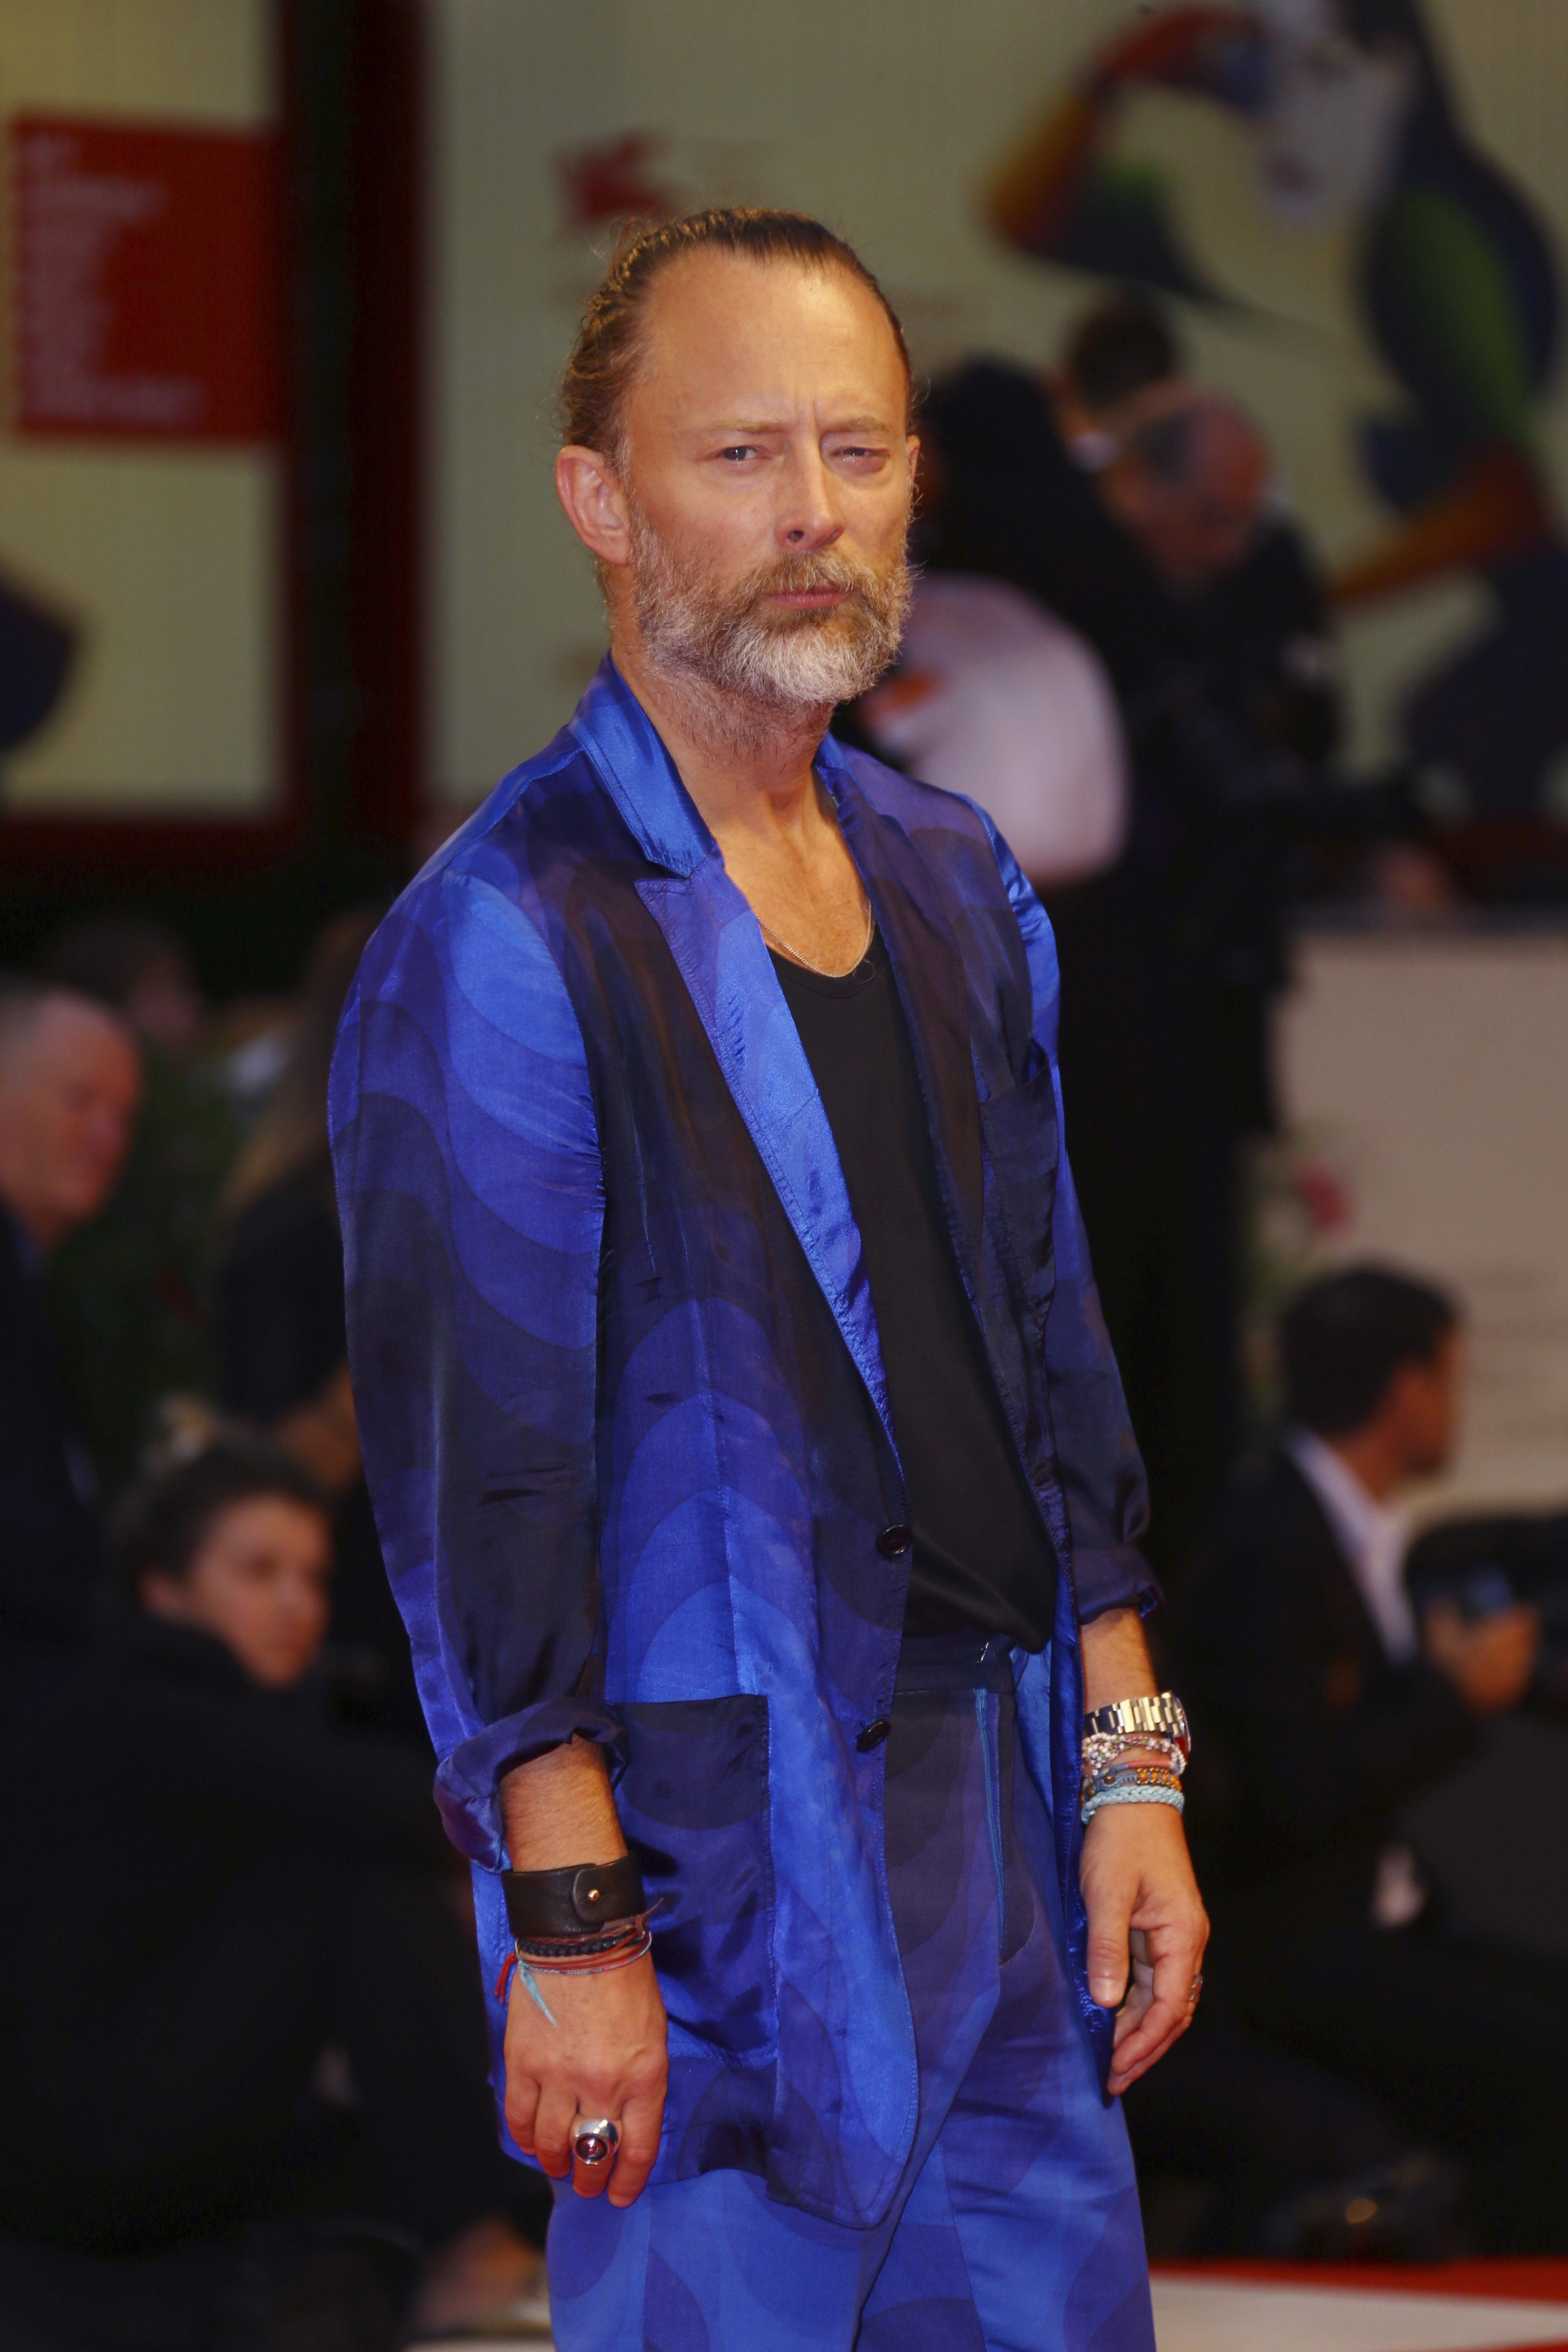 Singer Thom Yorke poses for photographers upon arrival at the premiere of the film 'Suspiria' at the 75th edition of the Venice Film Festival in Venice, Italy, Saturday, Sept. 1, 2018. (Photo by Joel C Ryan/Invision/AP)